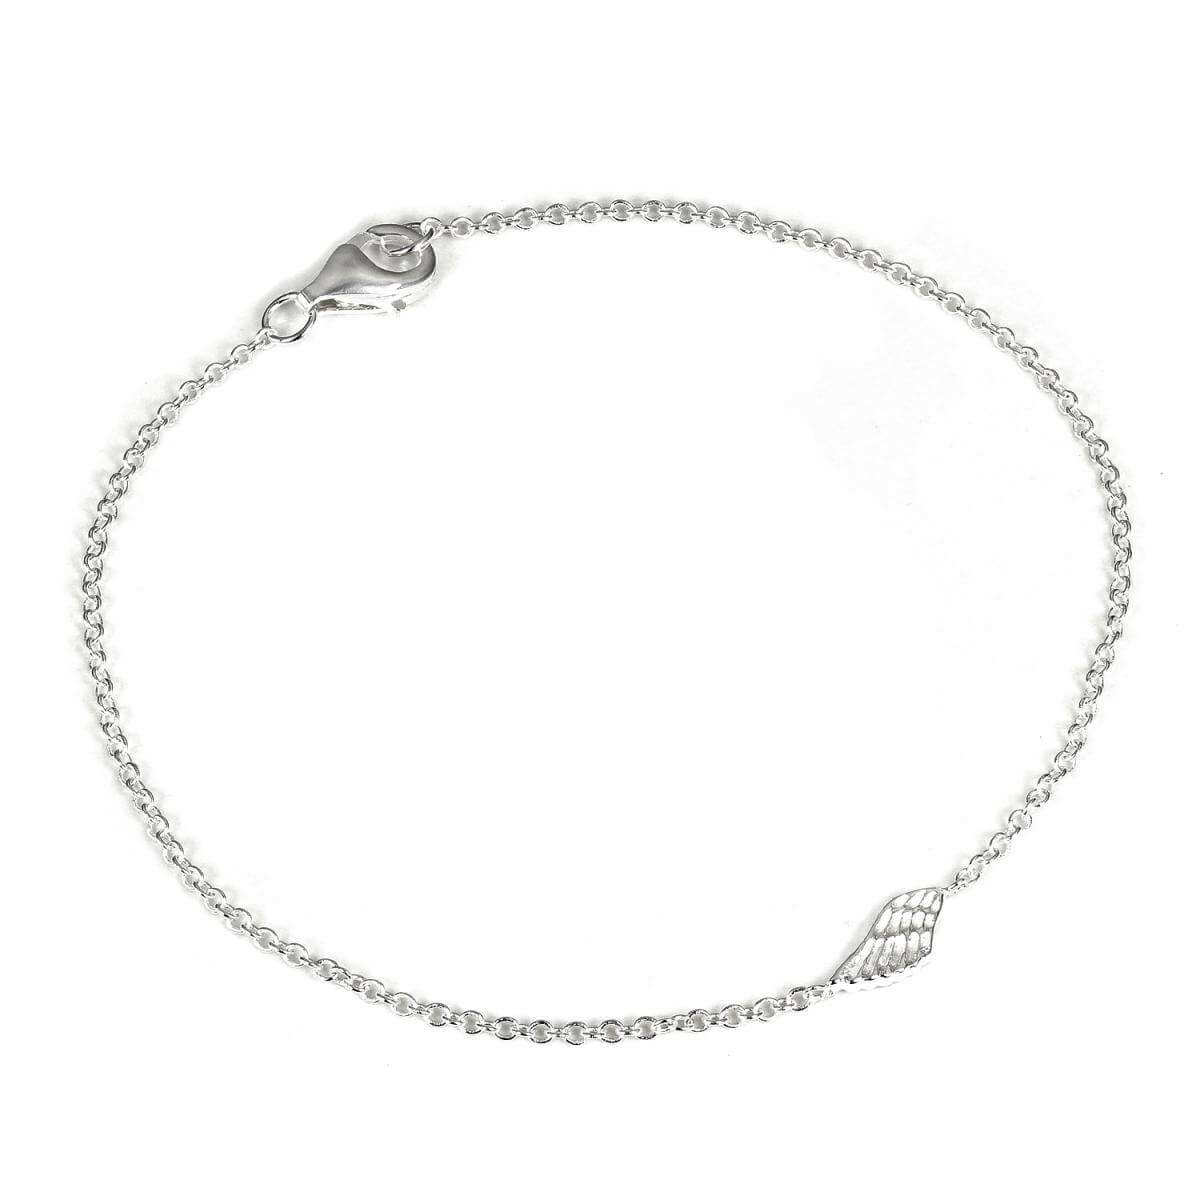 be62fc785ec Sterling Silver 7 Inch Fine Belcher Bracelet with Angel Wing Charm & Clasp  | JewelleryBox.co.uk